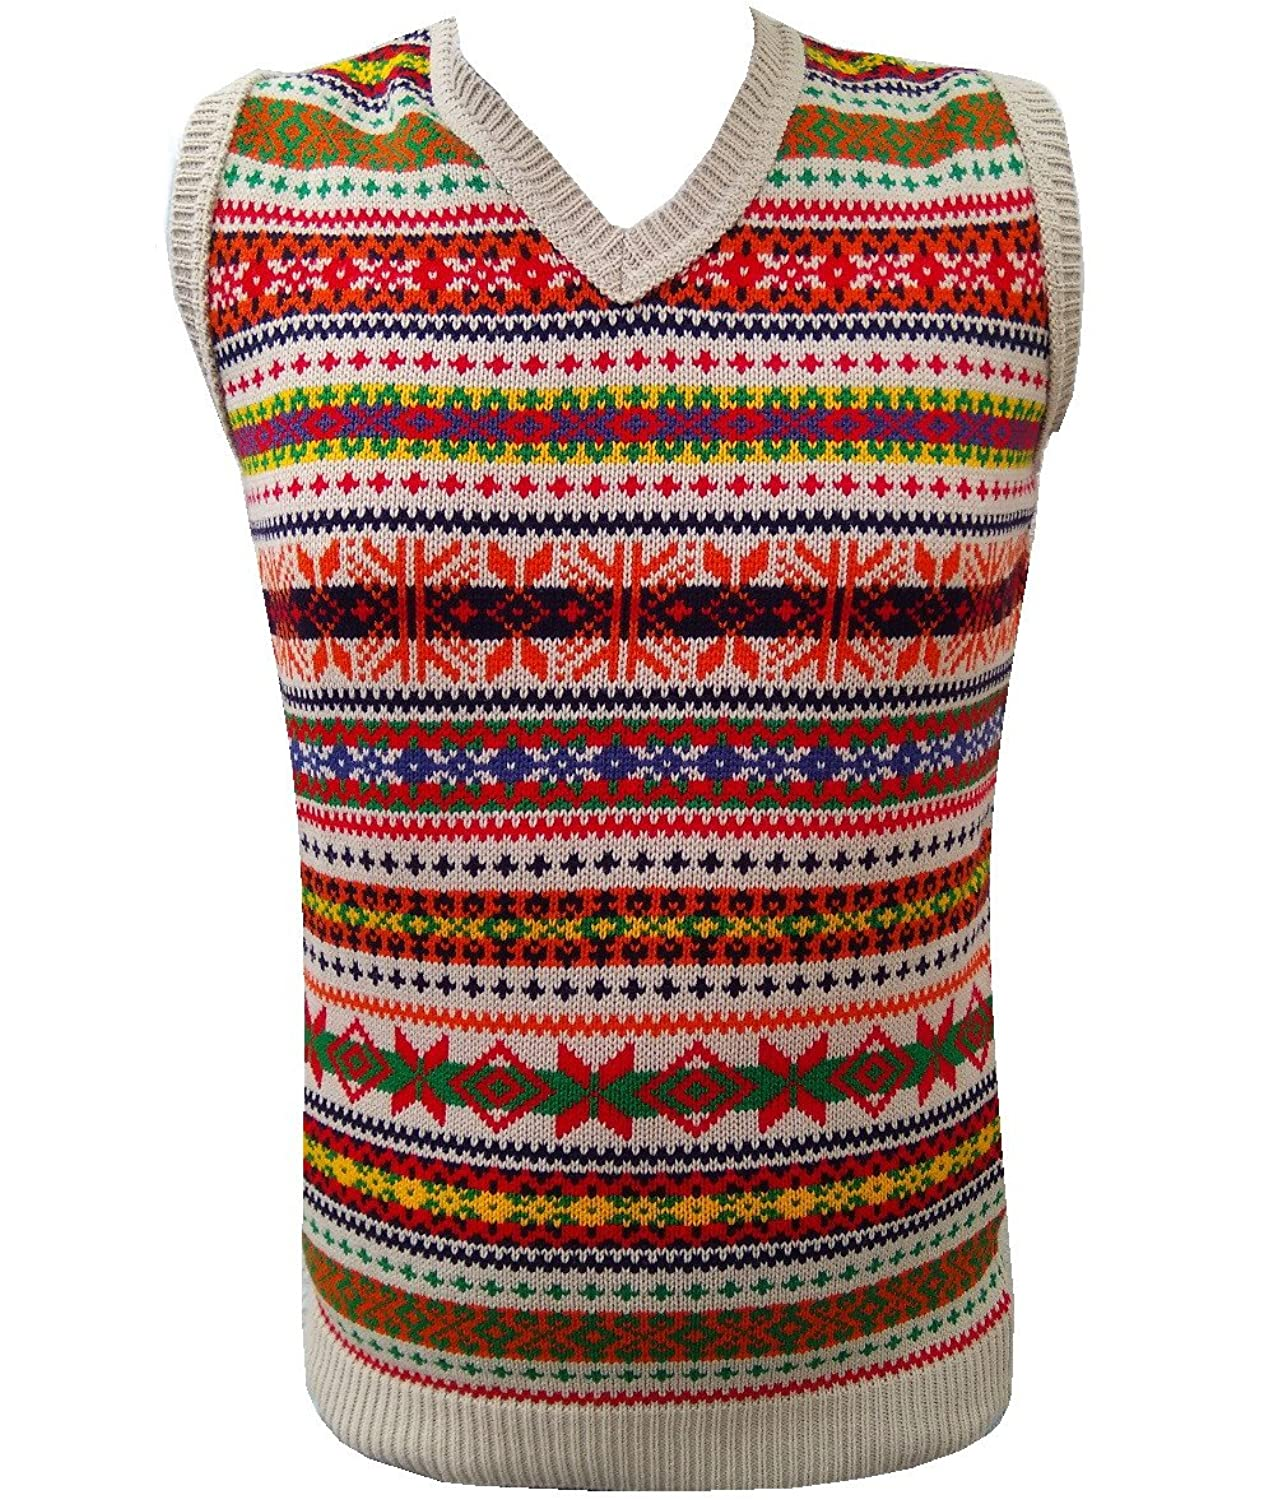 Dress in Great Gatsby Clothes for Men London Knitwear Gallery Retro Vintage Knitwear Tanktop Sleeveless Golf Sweater £19.99 AT vintagedancer.com